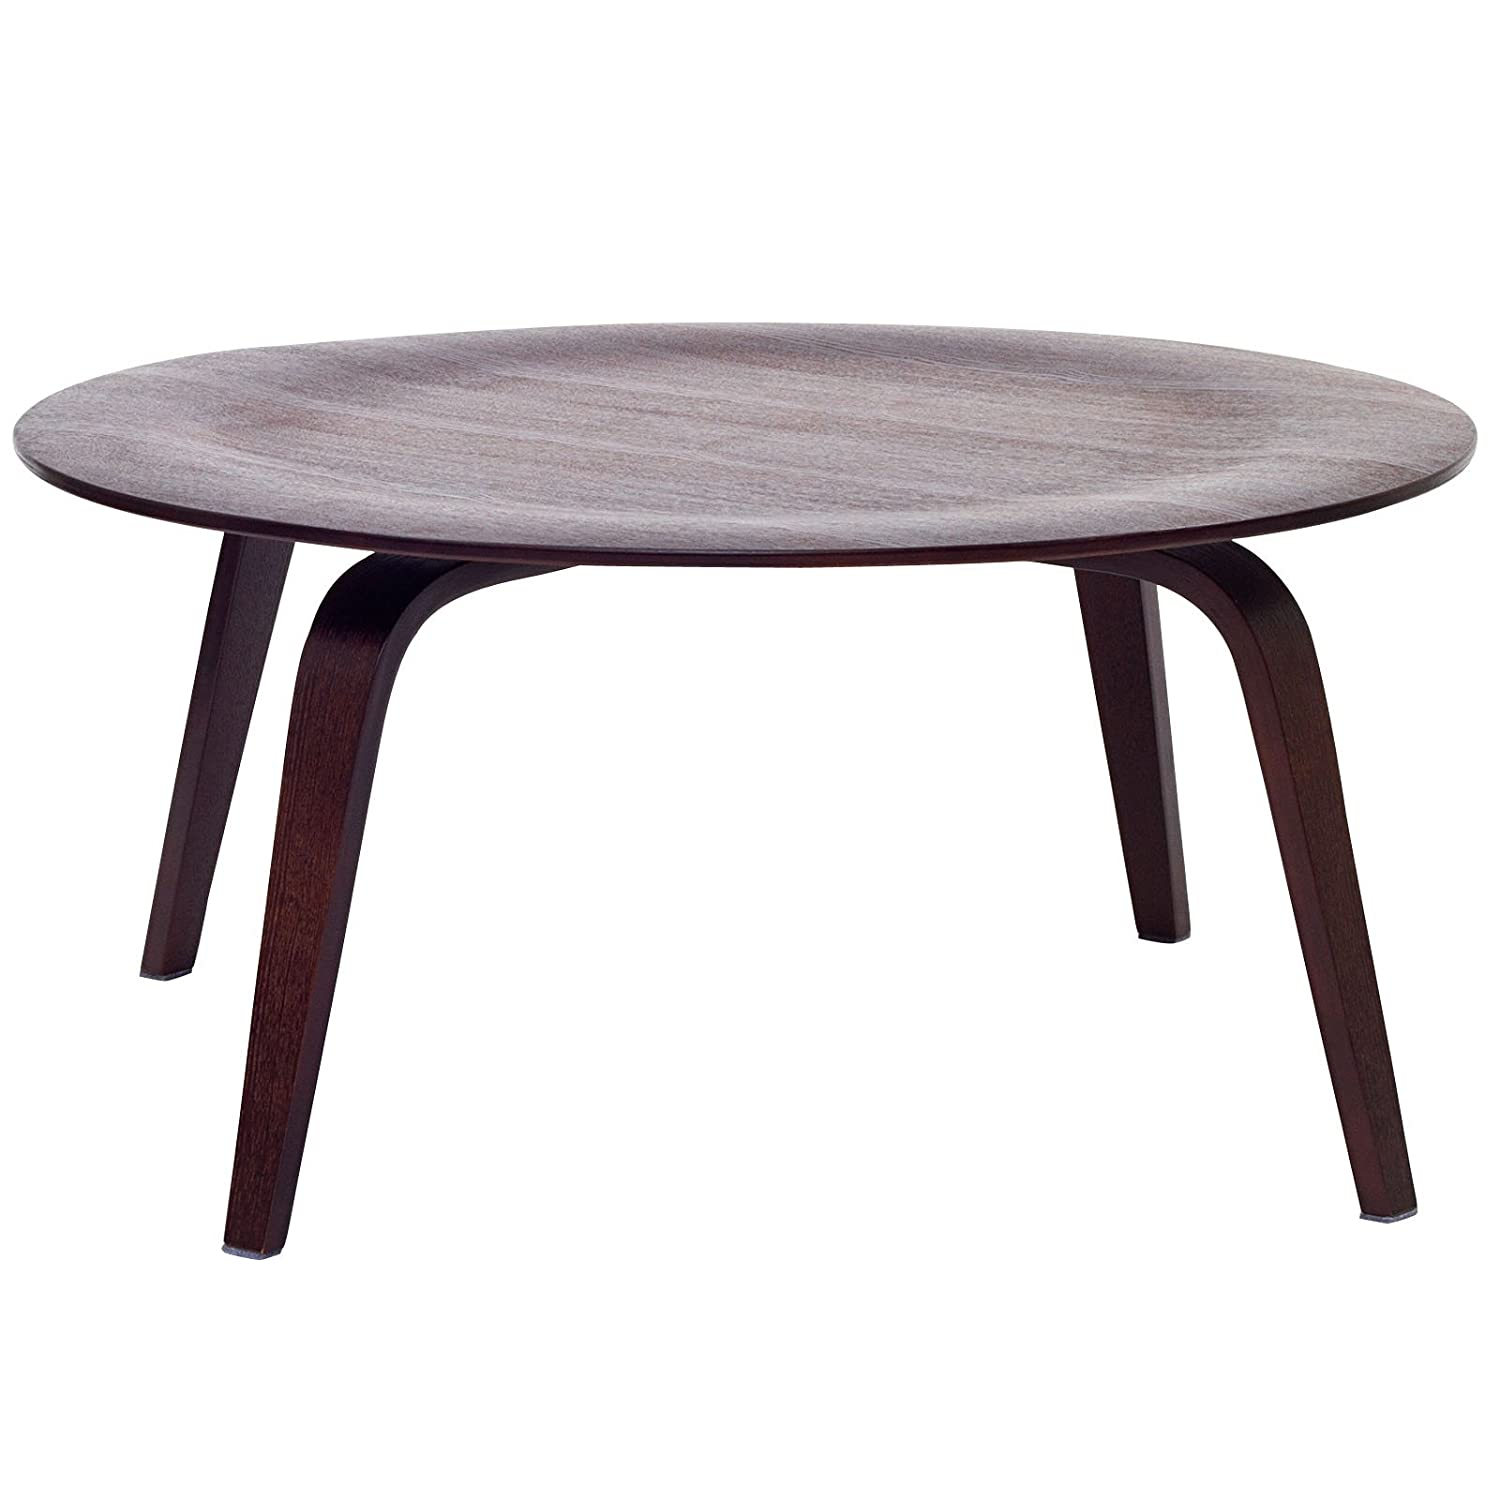 Amazon Modway Molded Fathom Coffee Table in Wenge Kitchen